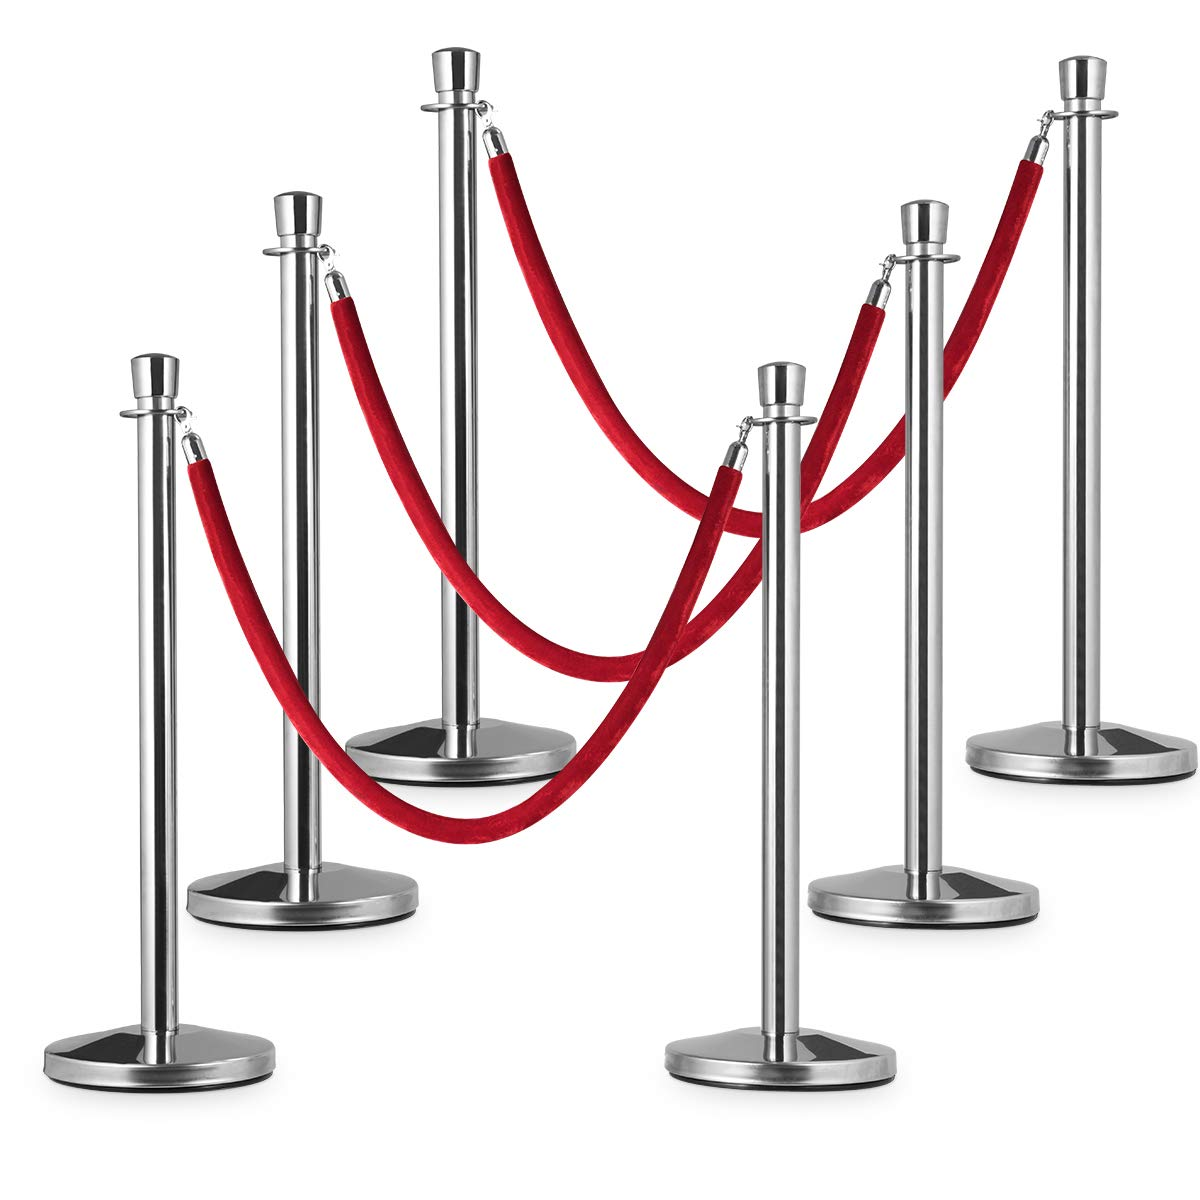 Goplus 6pcs Stanchion Set, Crowd Control Barrier Stainless Steel Stanchion Posts Queue Pole with 5Ft Velvet Rope, Suitable for Theaters, Party, Wedding Exhibition Centers, Ticket Offices (Silver)